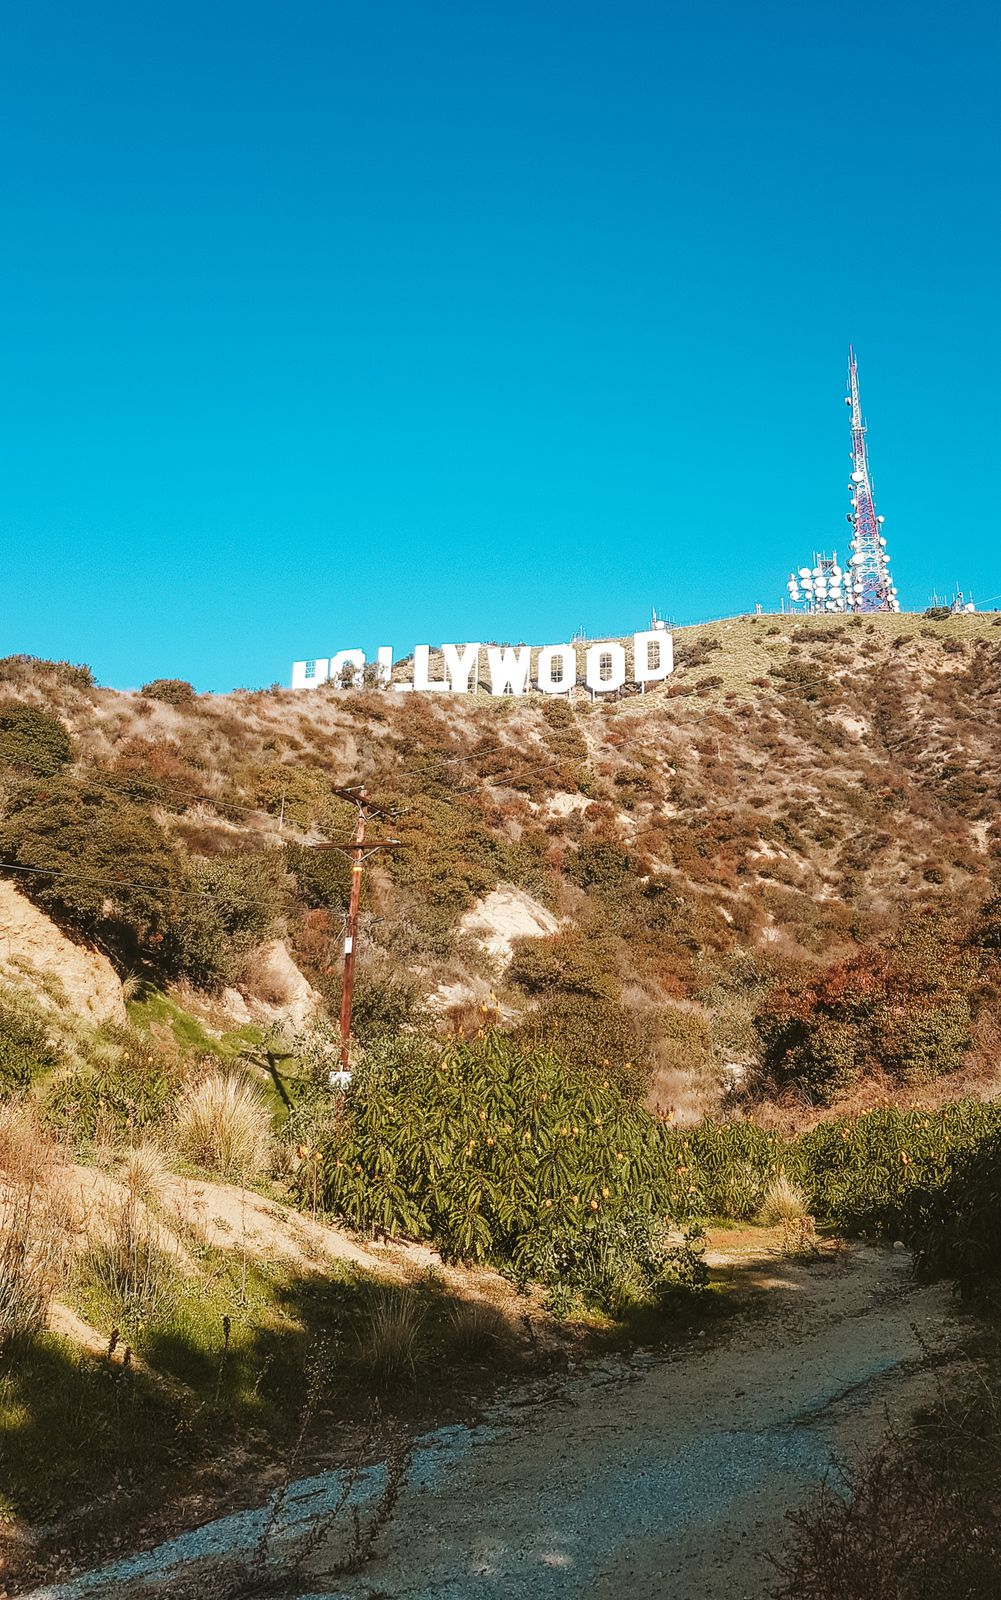 4 Jours à West Hollywood en Californie